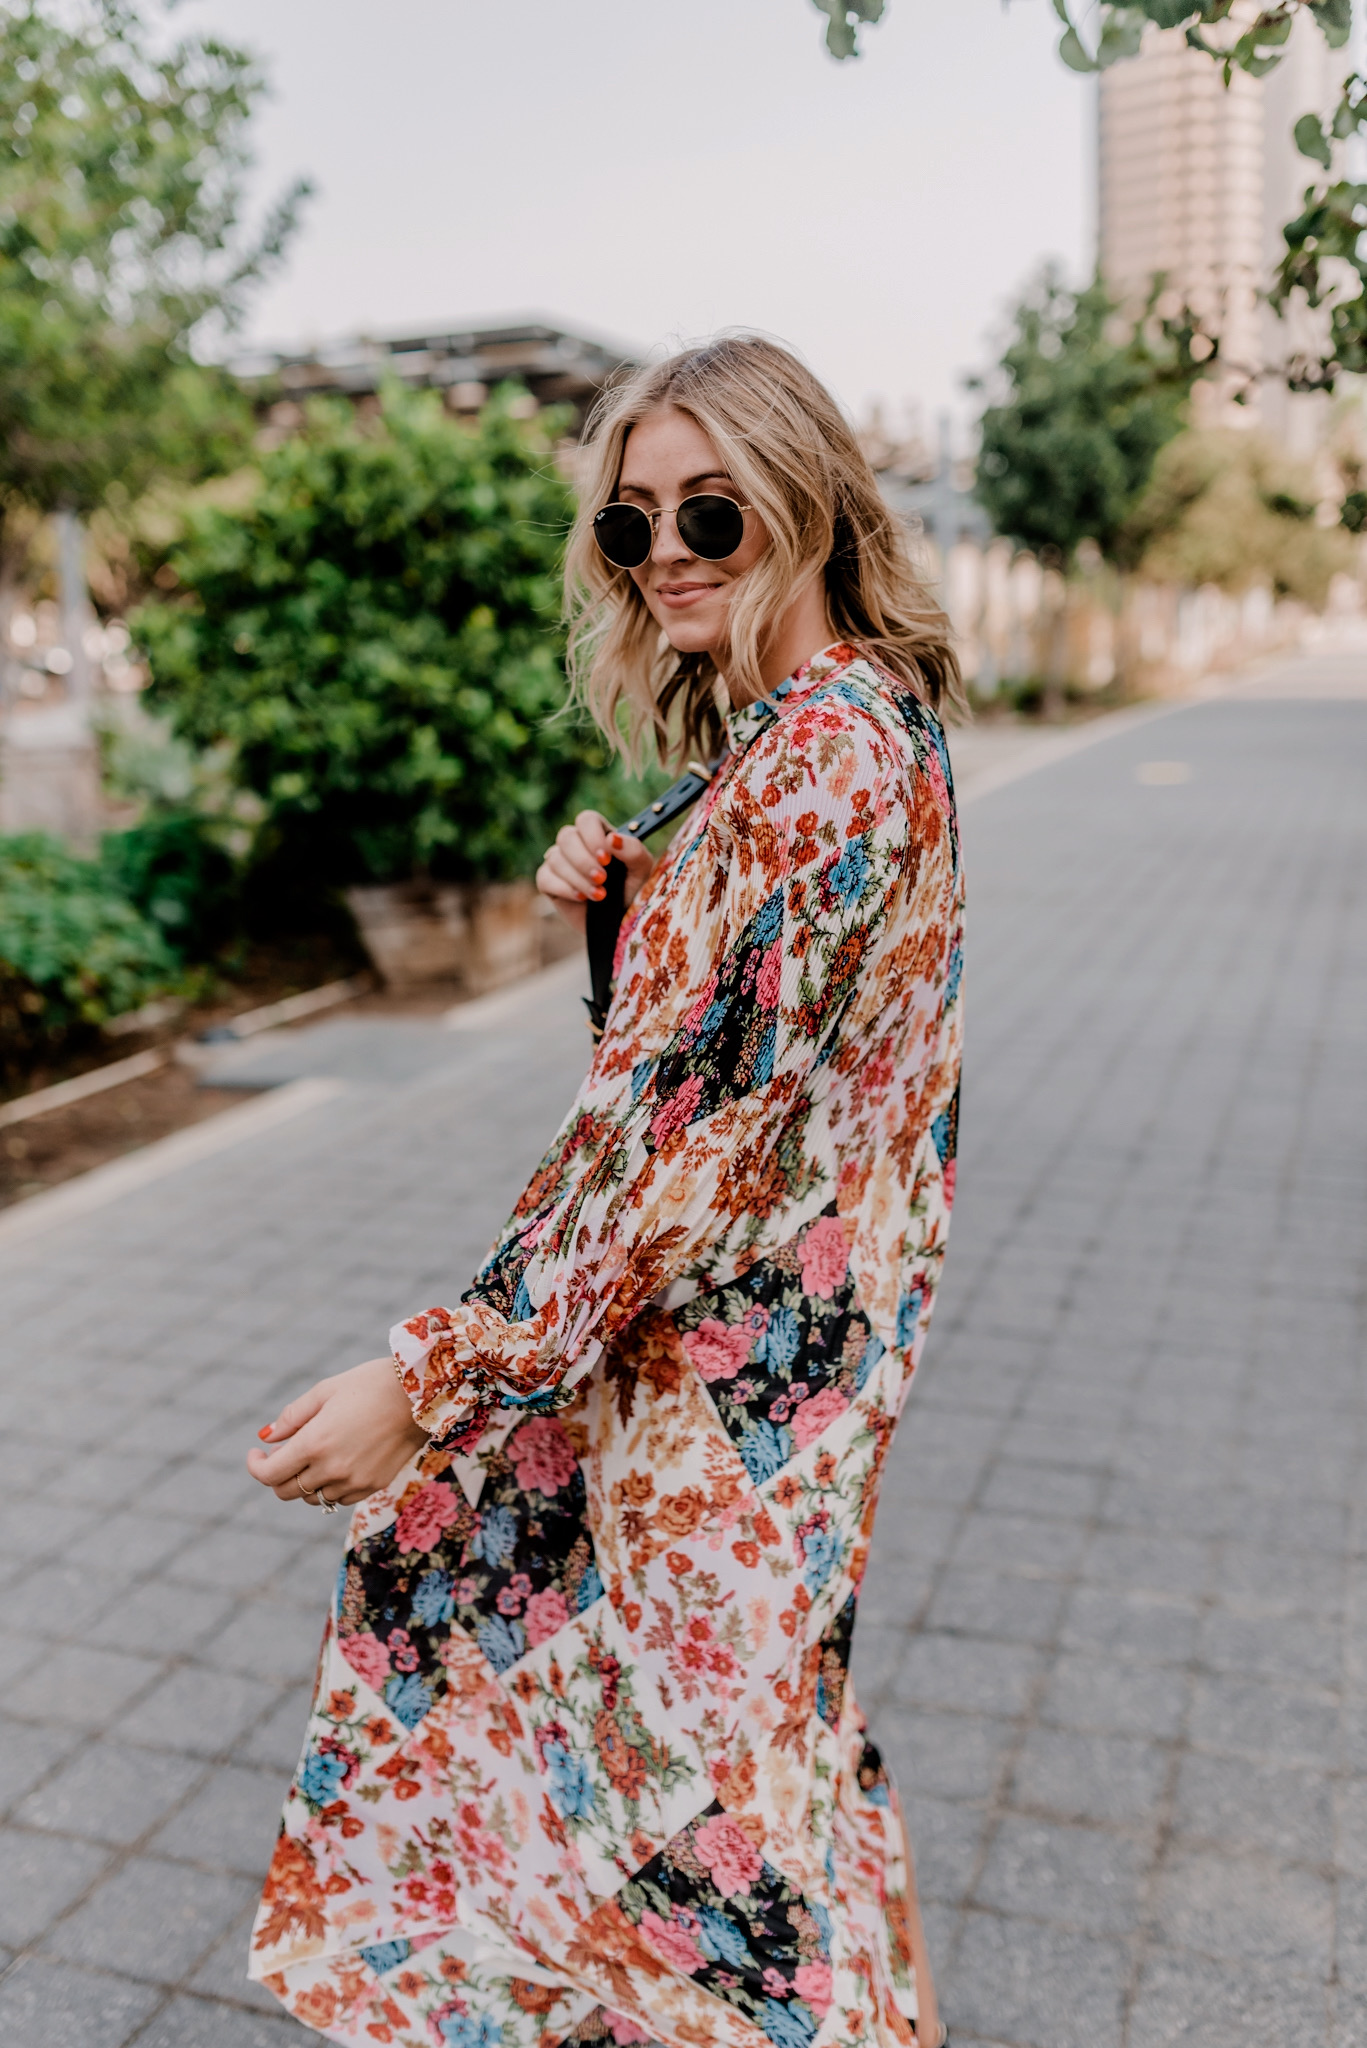 Fall Dresses by popular San Diego fashion blog, Nay Grace: image of a woman walking outside and wearing a Anthropologie Shara Pleated Midi Dress, Nordstrom Icons 50mm Round Metal Sunglasses RAY-BAN, black Converse high top sneakers, and a Prada Cahier shoulder bag.